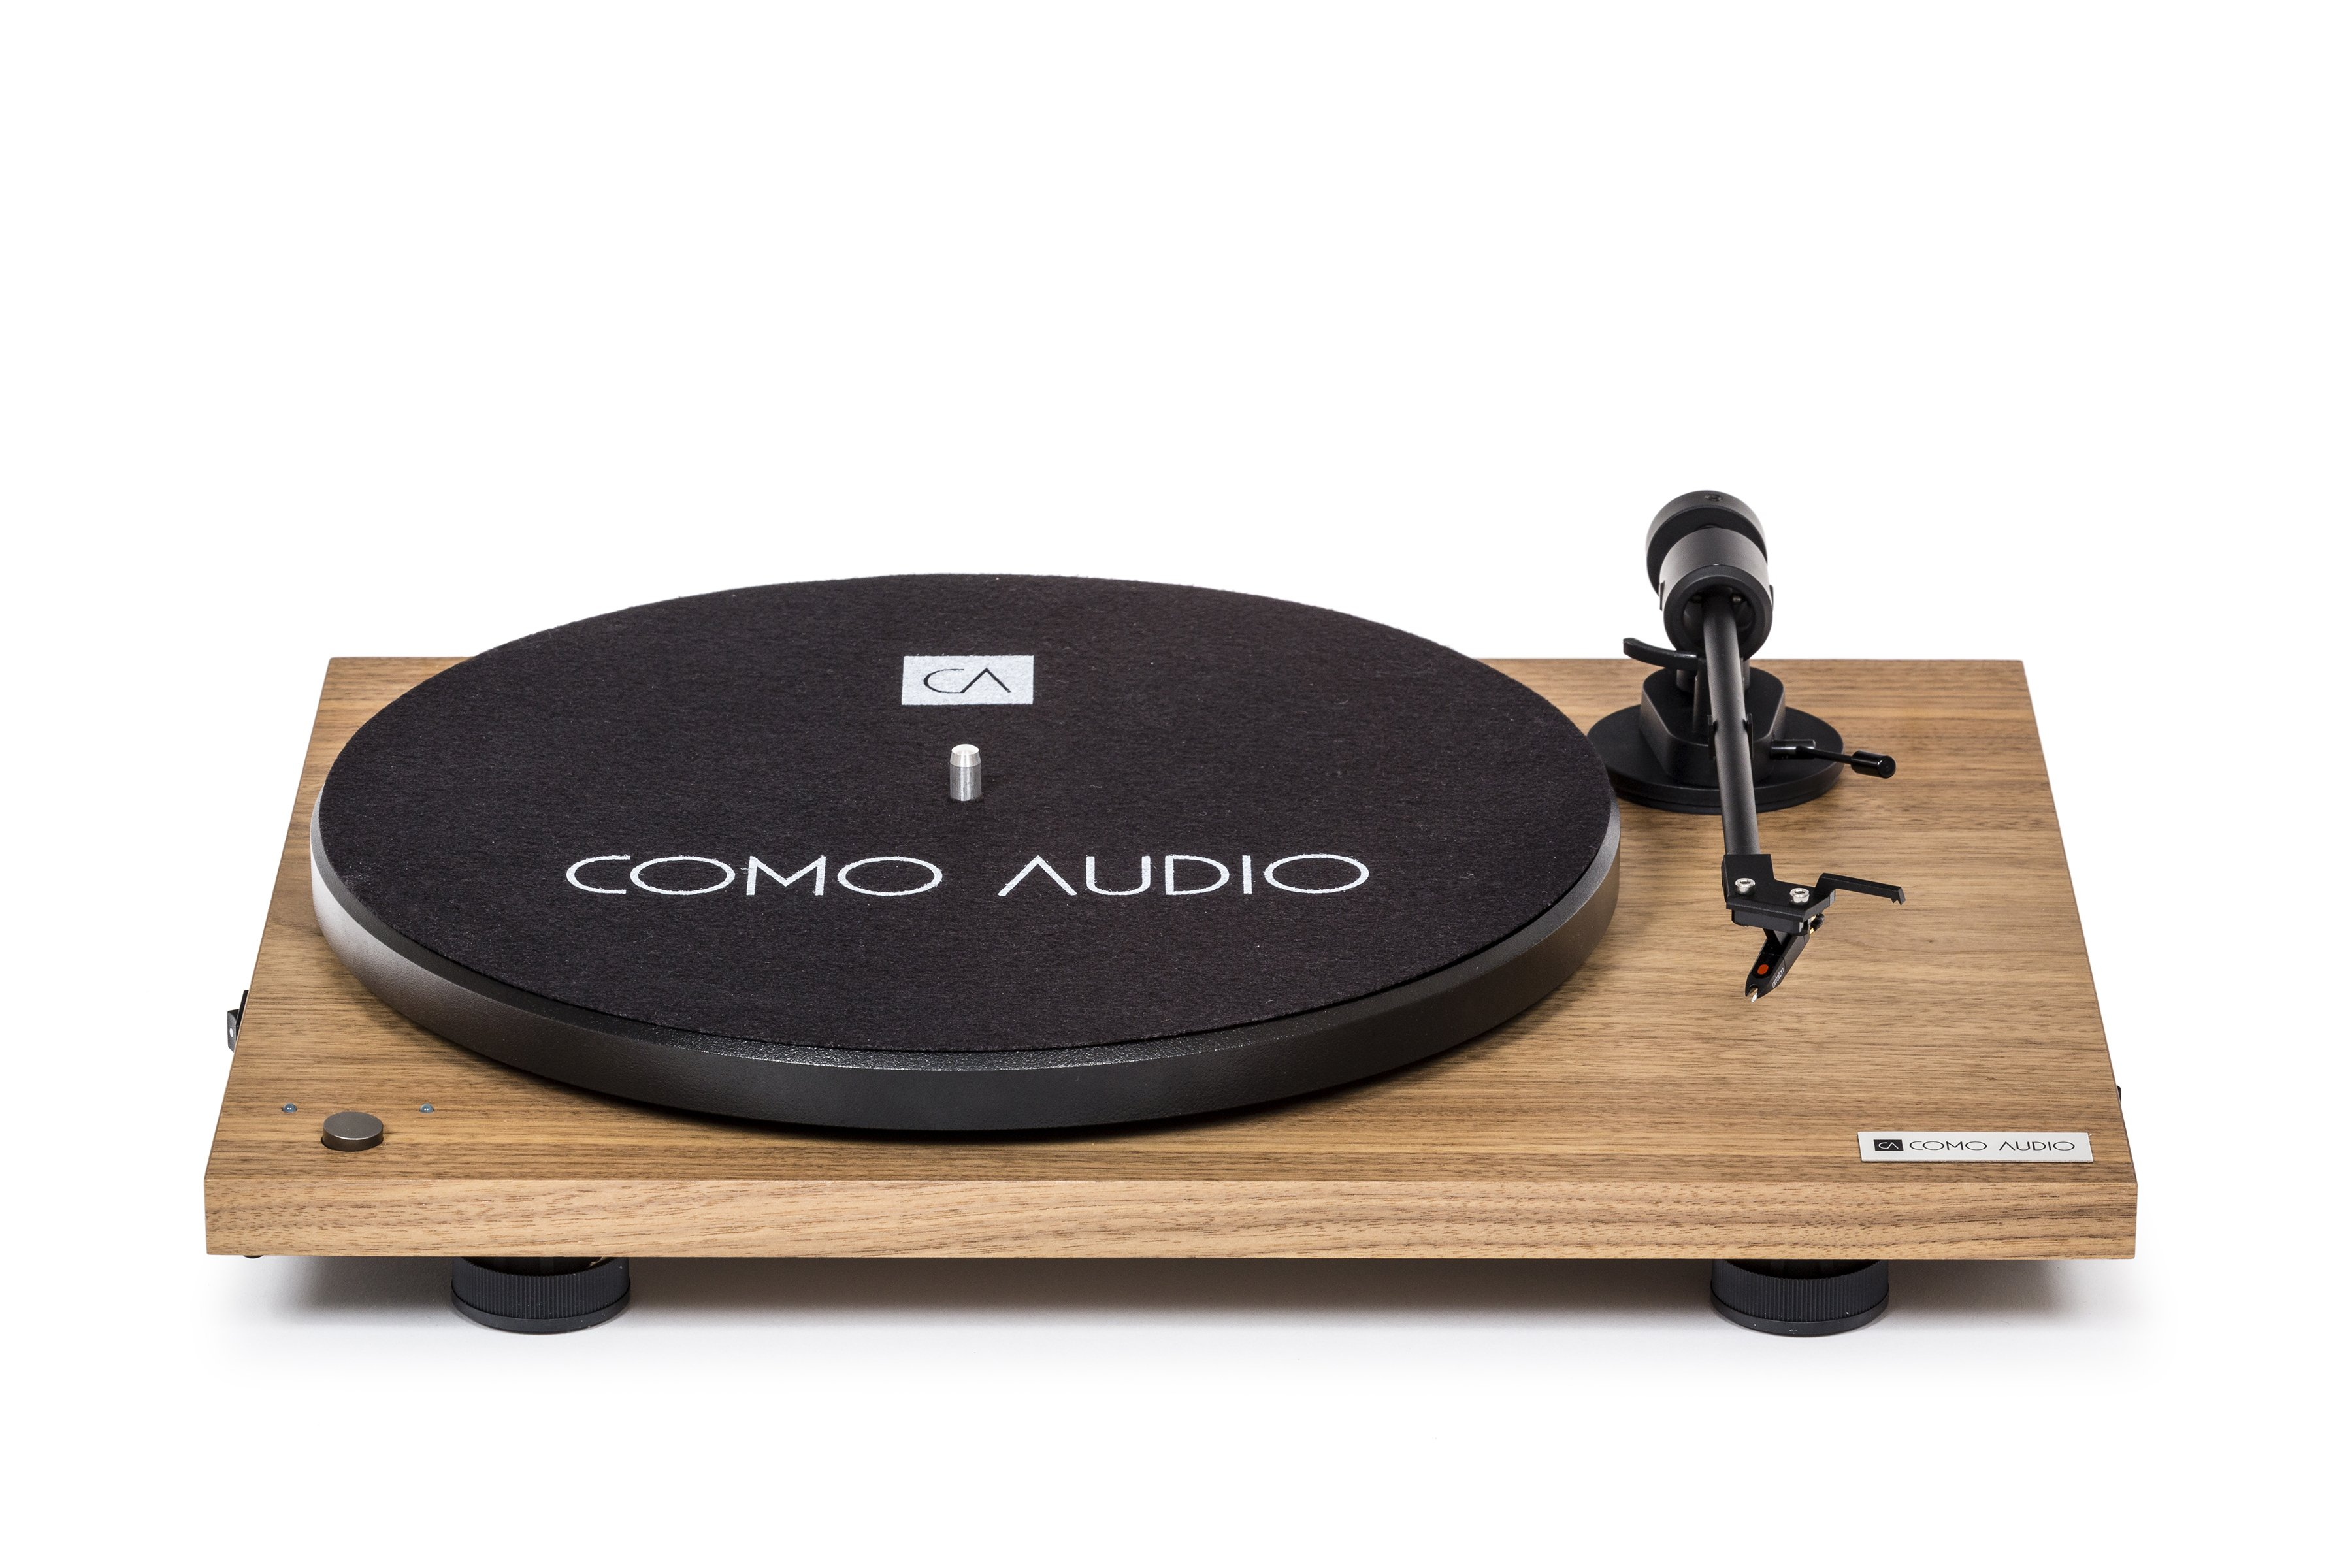 Como Audio Introduces Its First Streaming Turntable Designed for Playing Records Wirelessly All Over The House